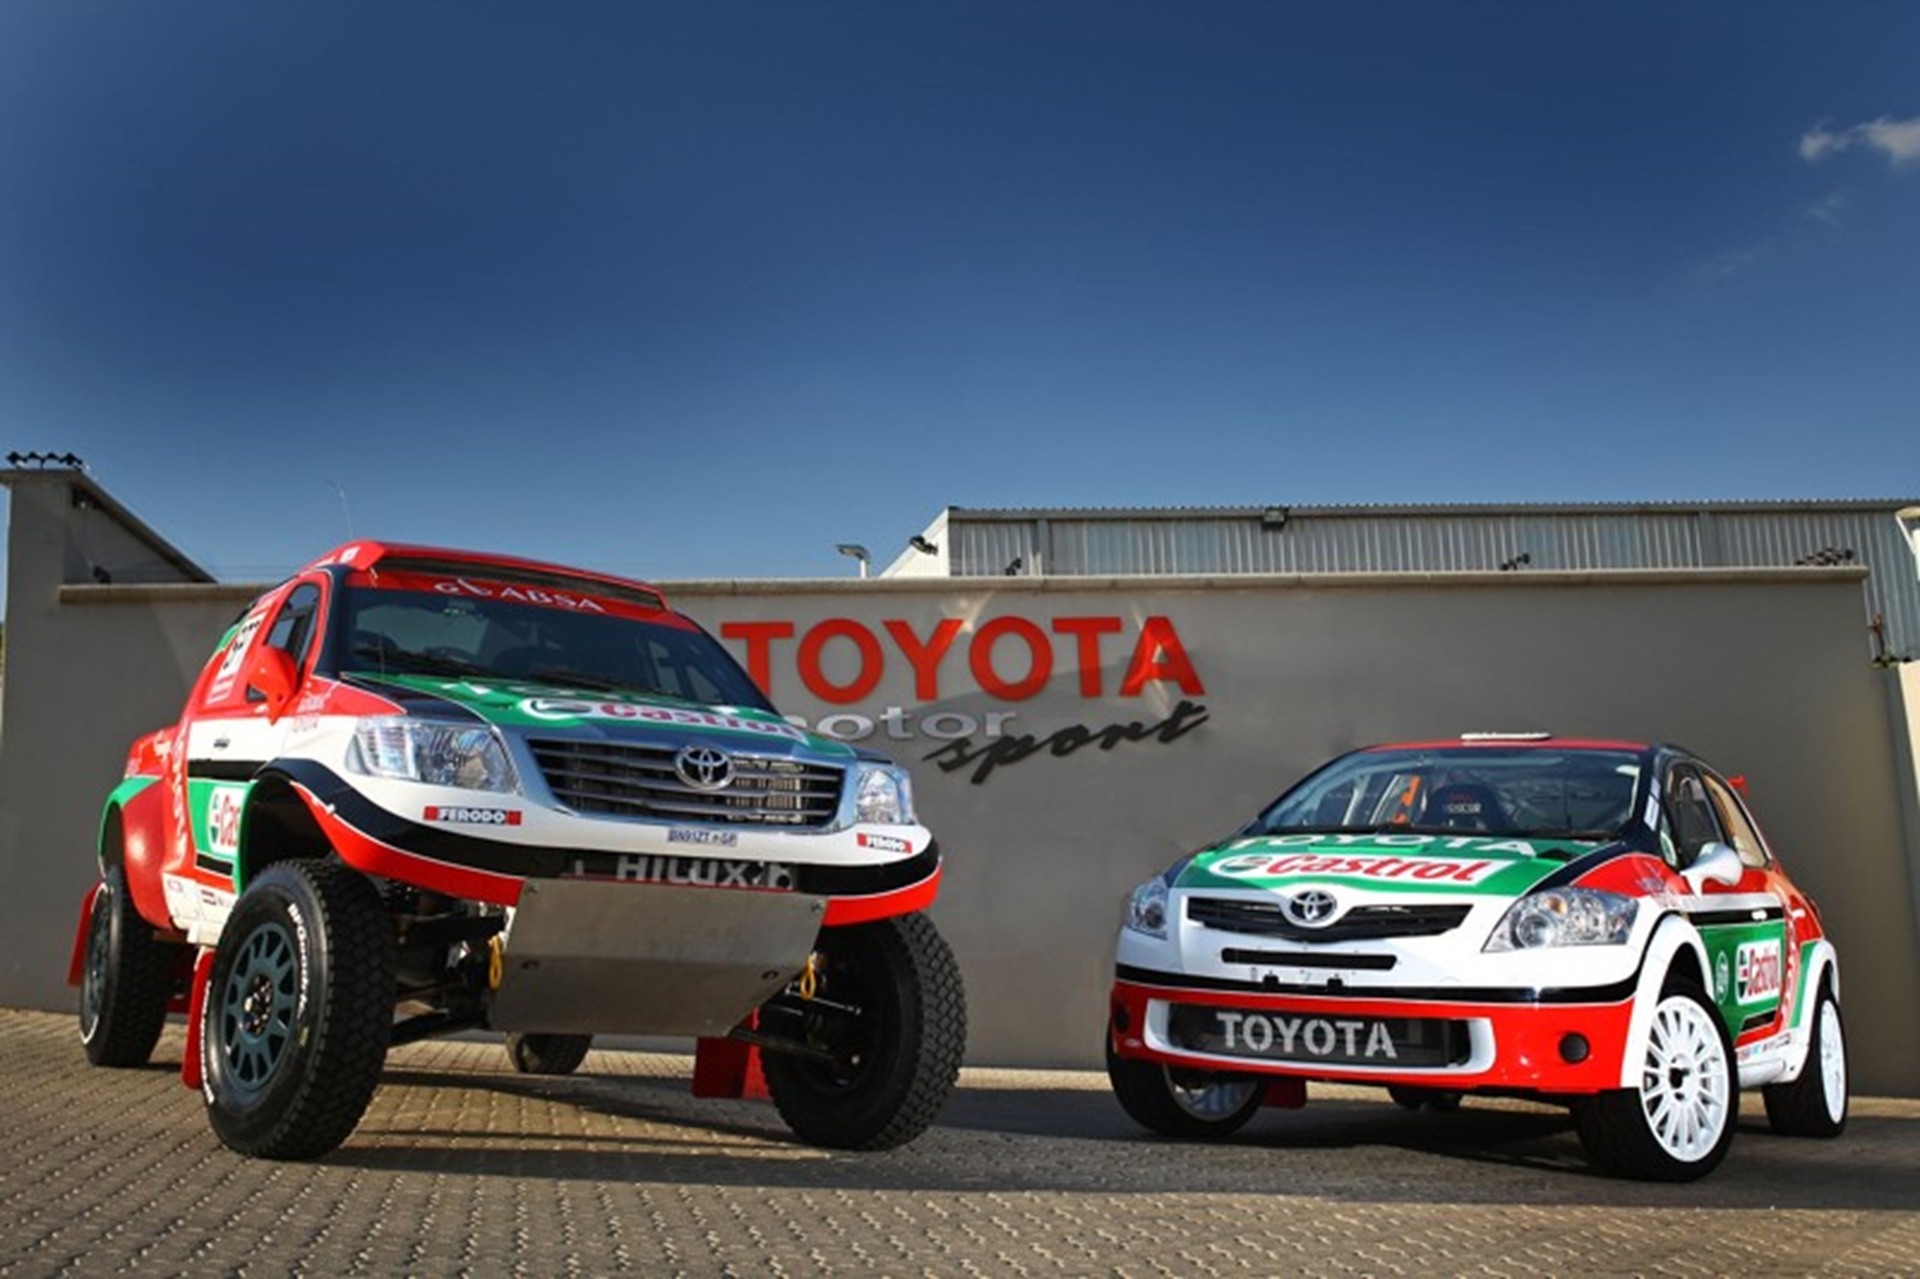 Toyota South-Africa Racing